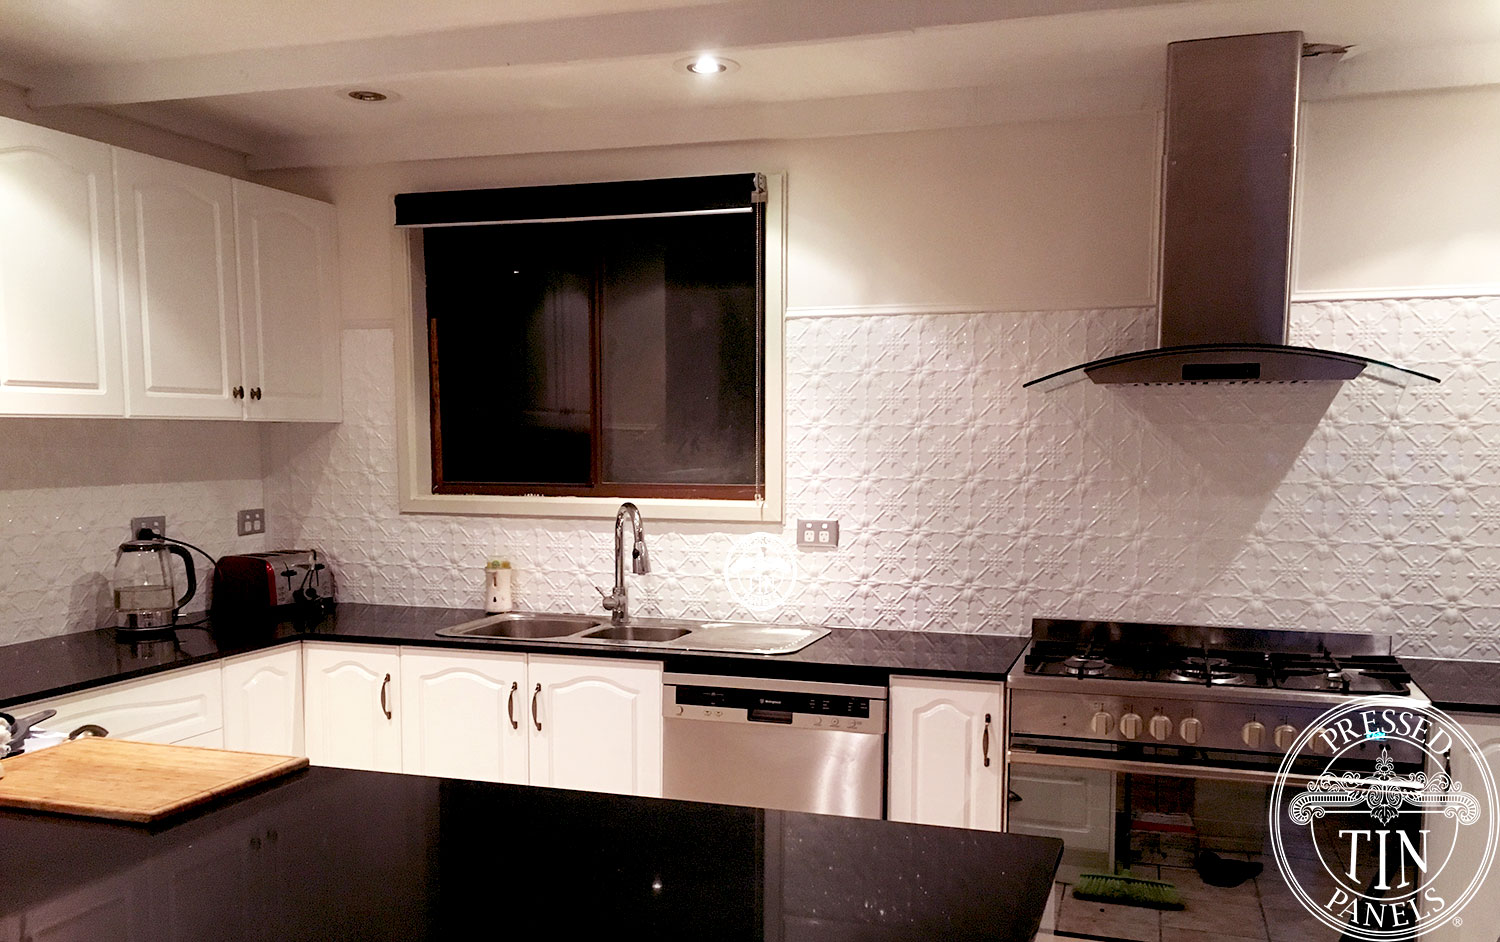 Pressed Tin Panels 'Original' pattern powder coated in Classic White